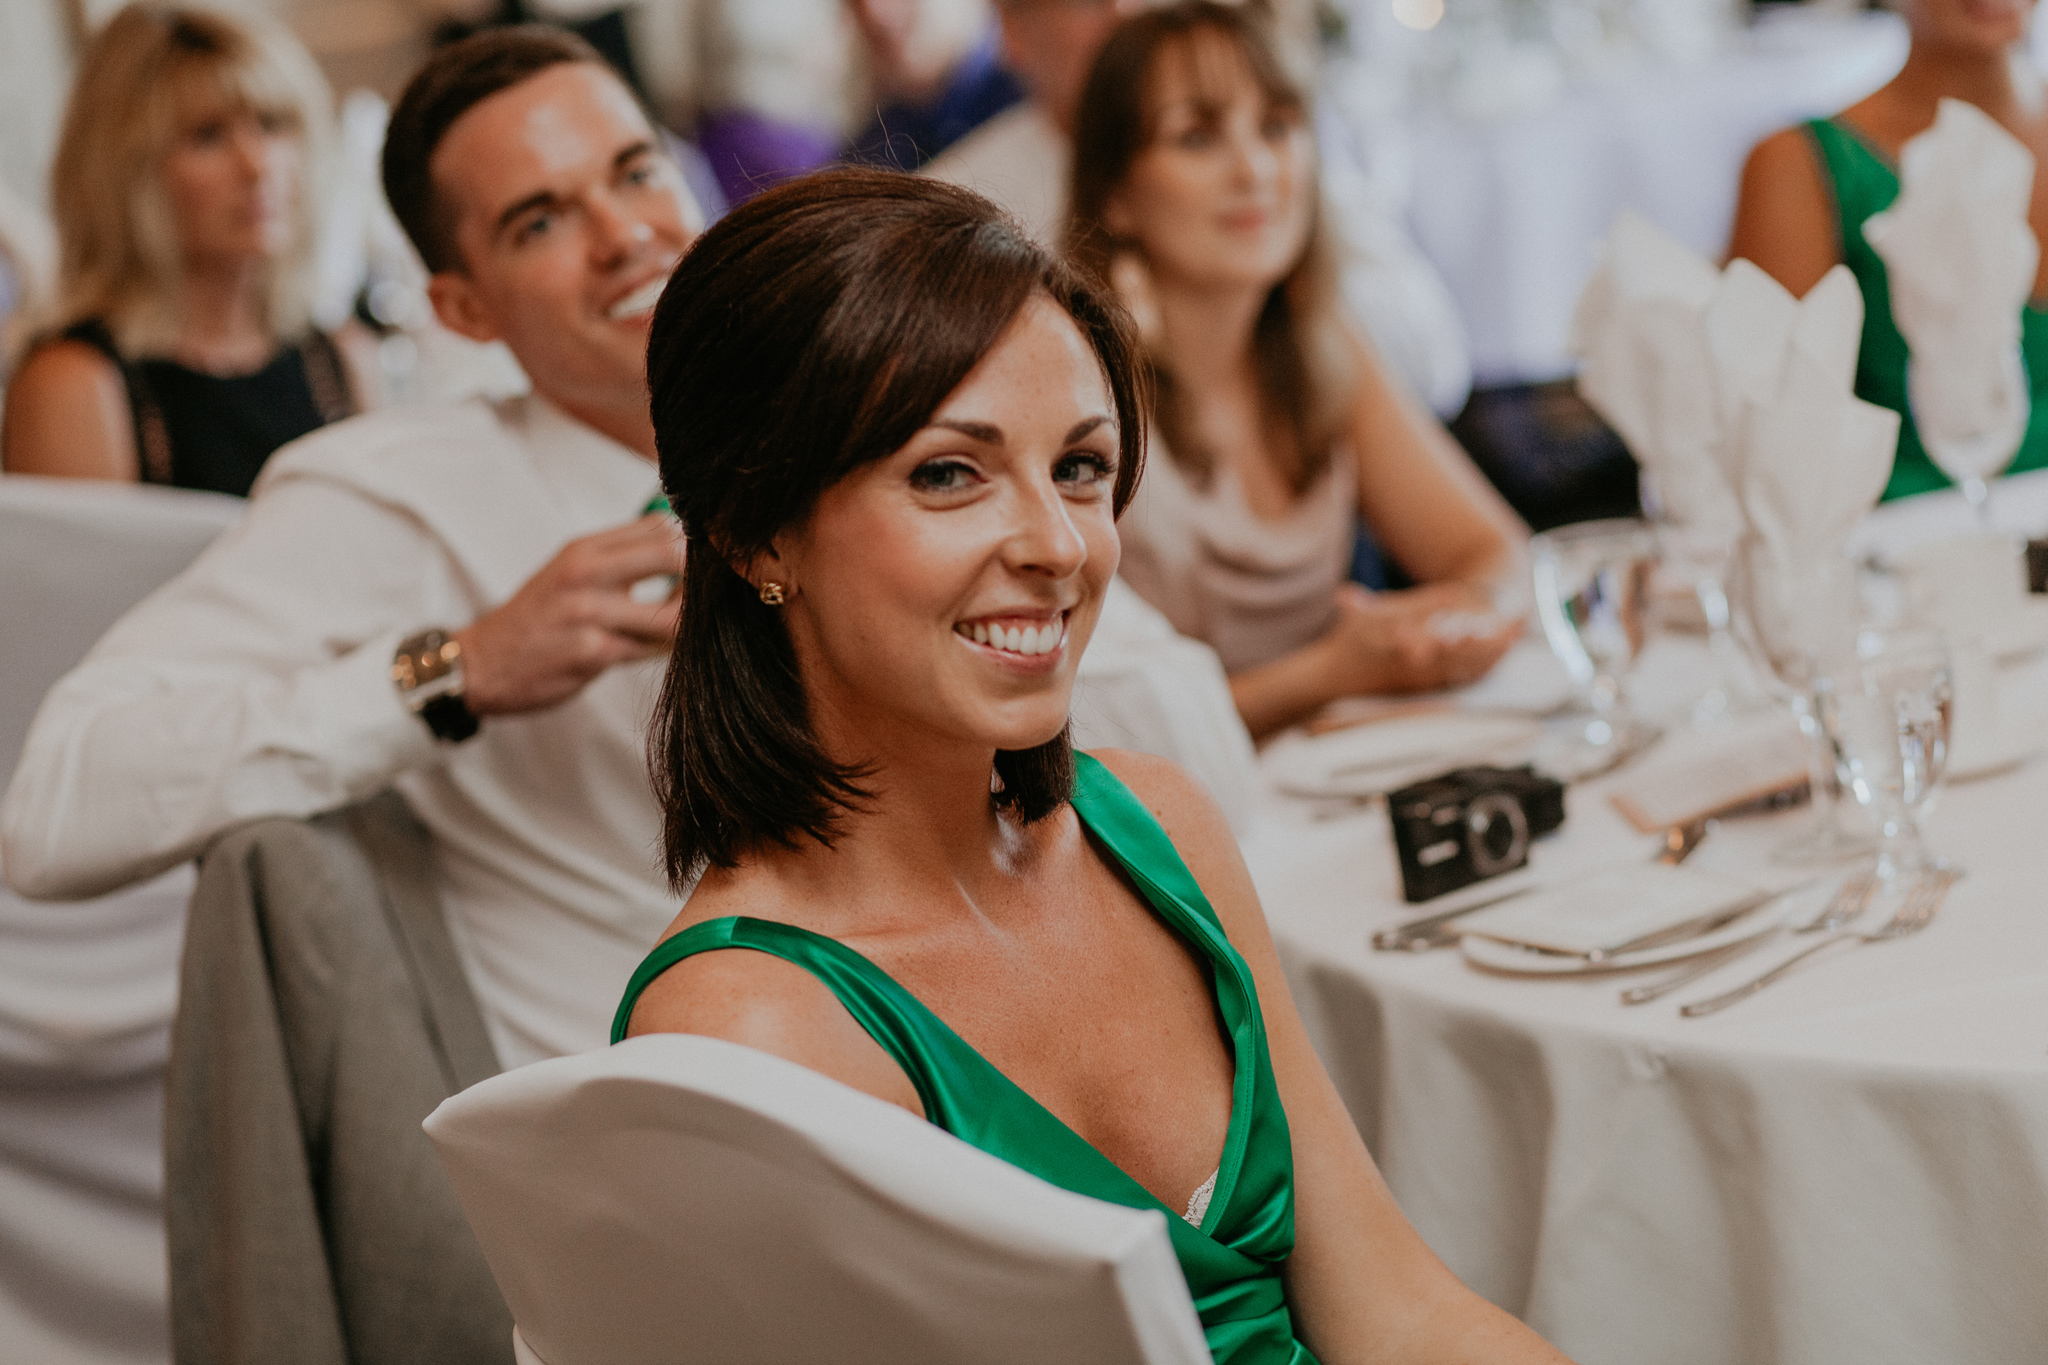 Bridesmaid in green dress smiles during reception documentary wedding photo